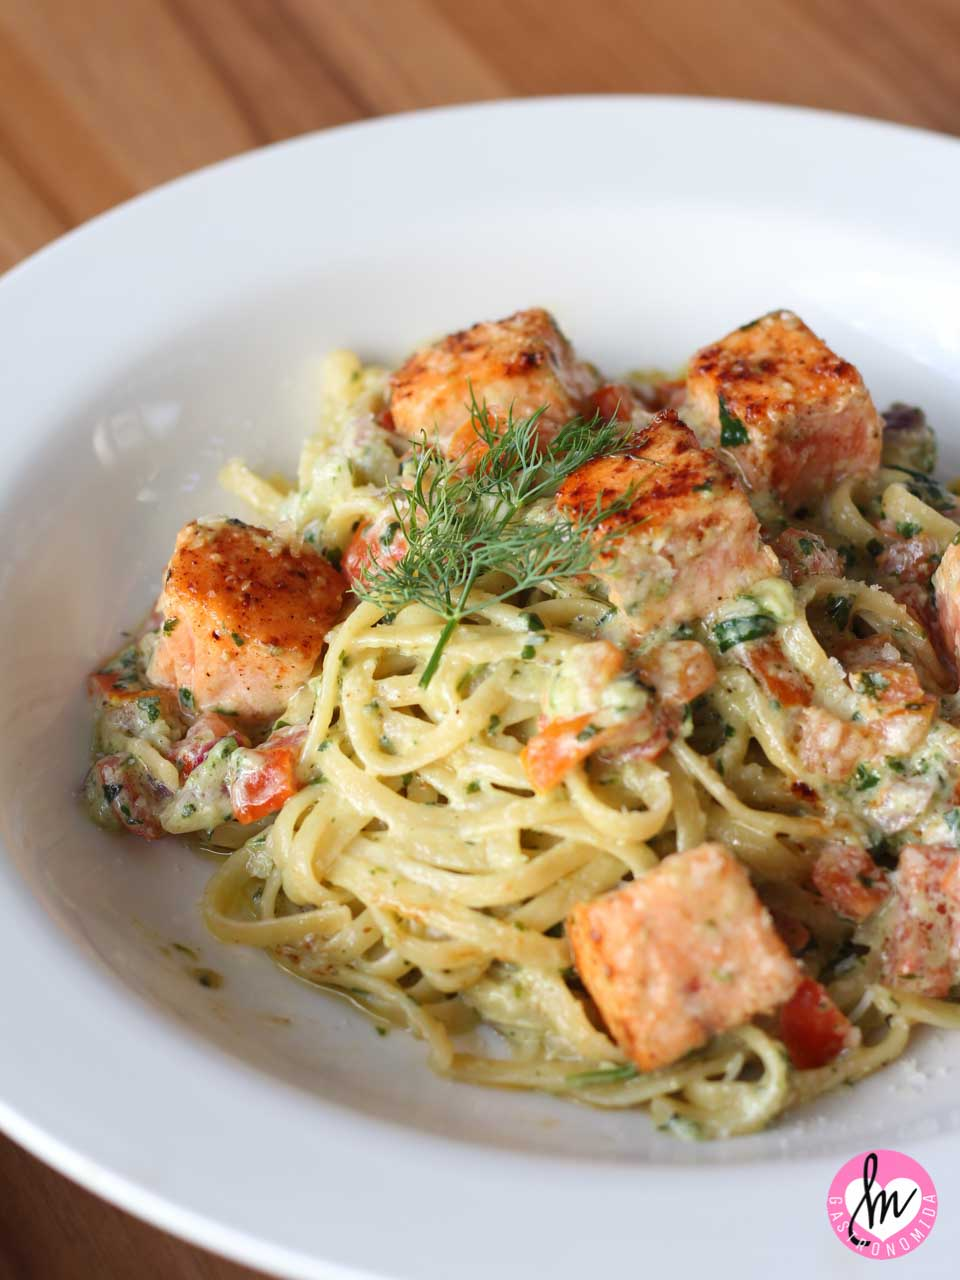 Linguini pasta with tomatoes, parmesan, and pesto cream topped with chunks of salmon